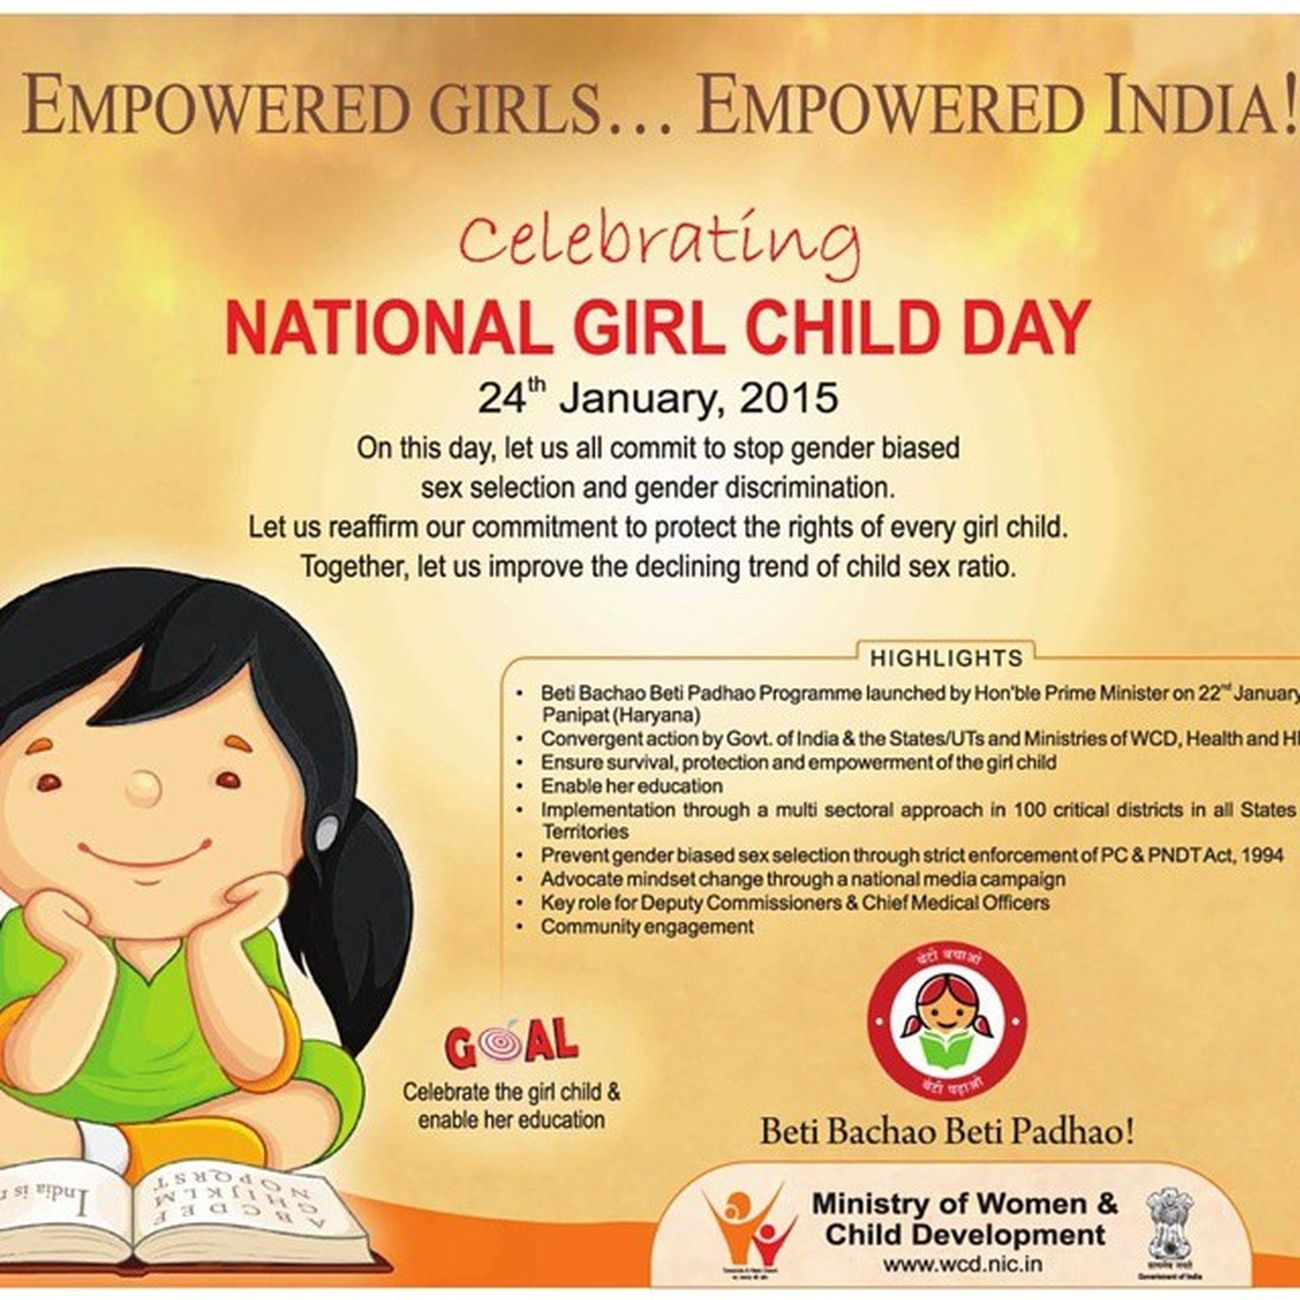 Empowered girls .... Empowered India BetiBachaoBetiPadhao with NationalGirlsDay ...!!